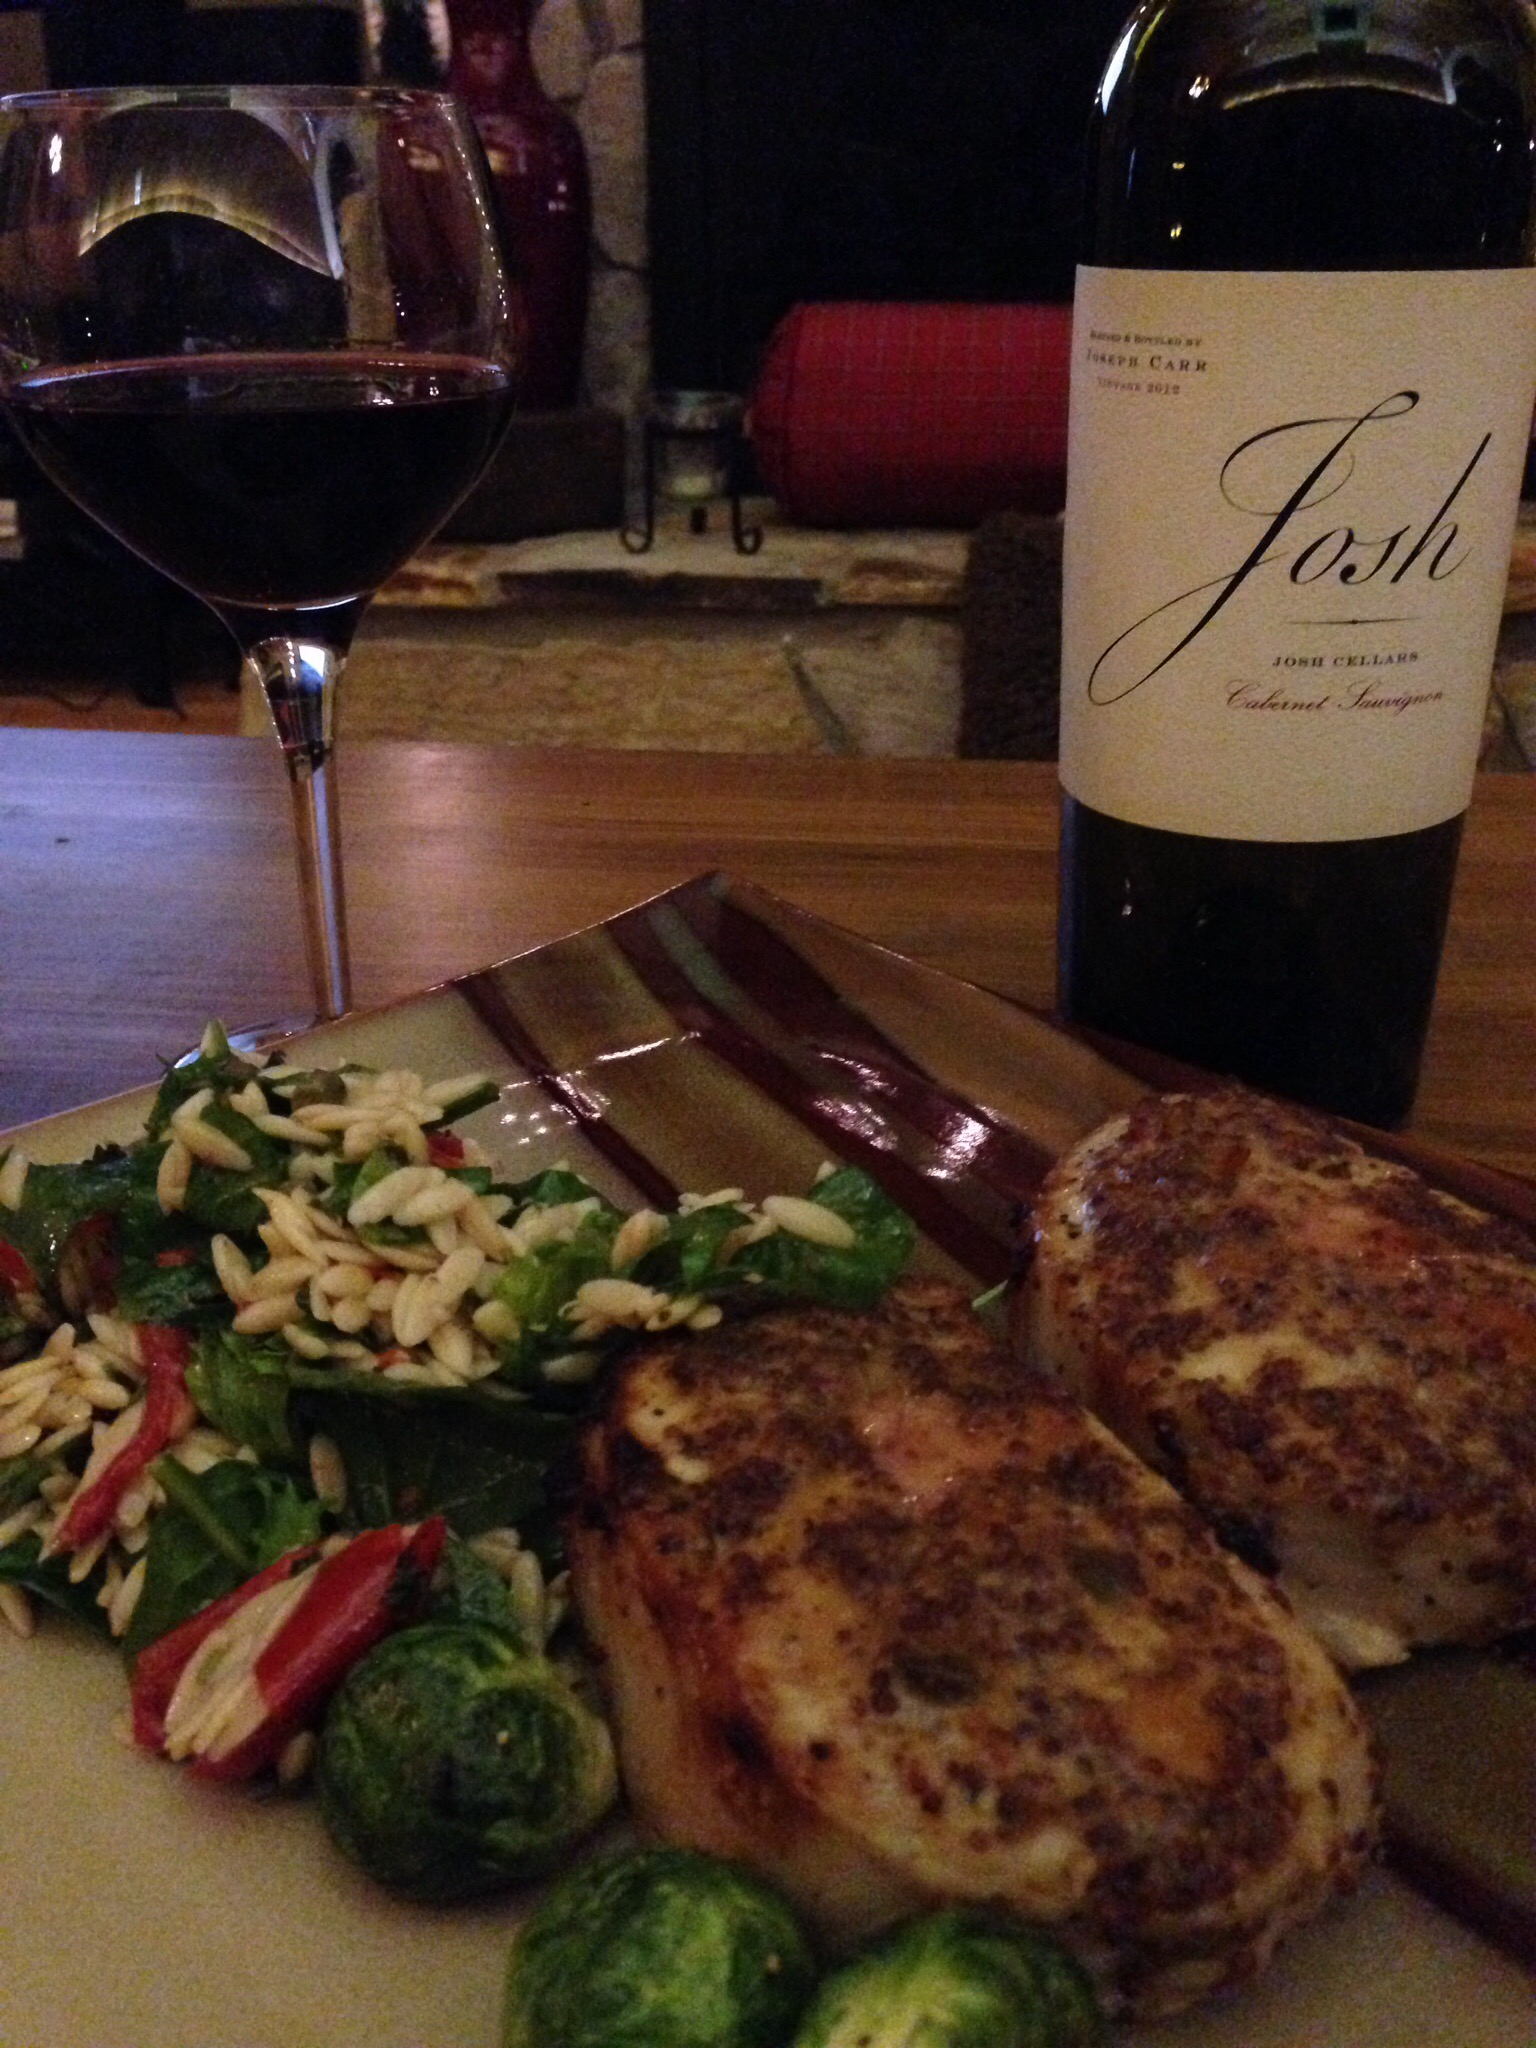 2012 Josh Cellars, Cabernet Sauvignon California USA